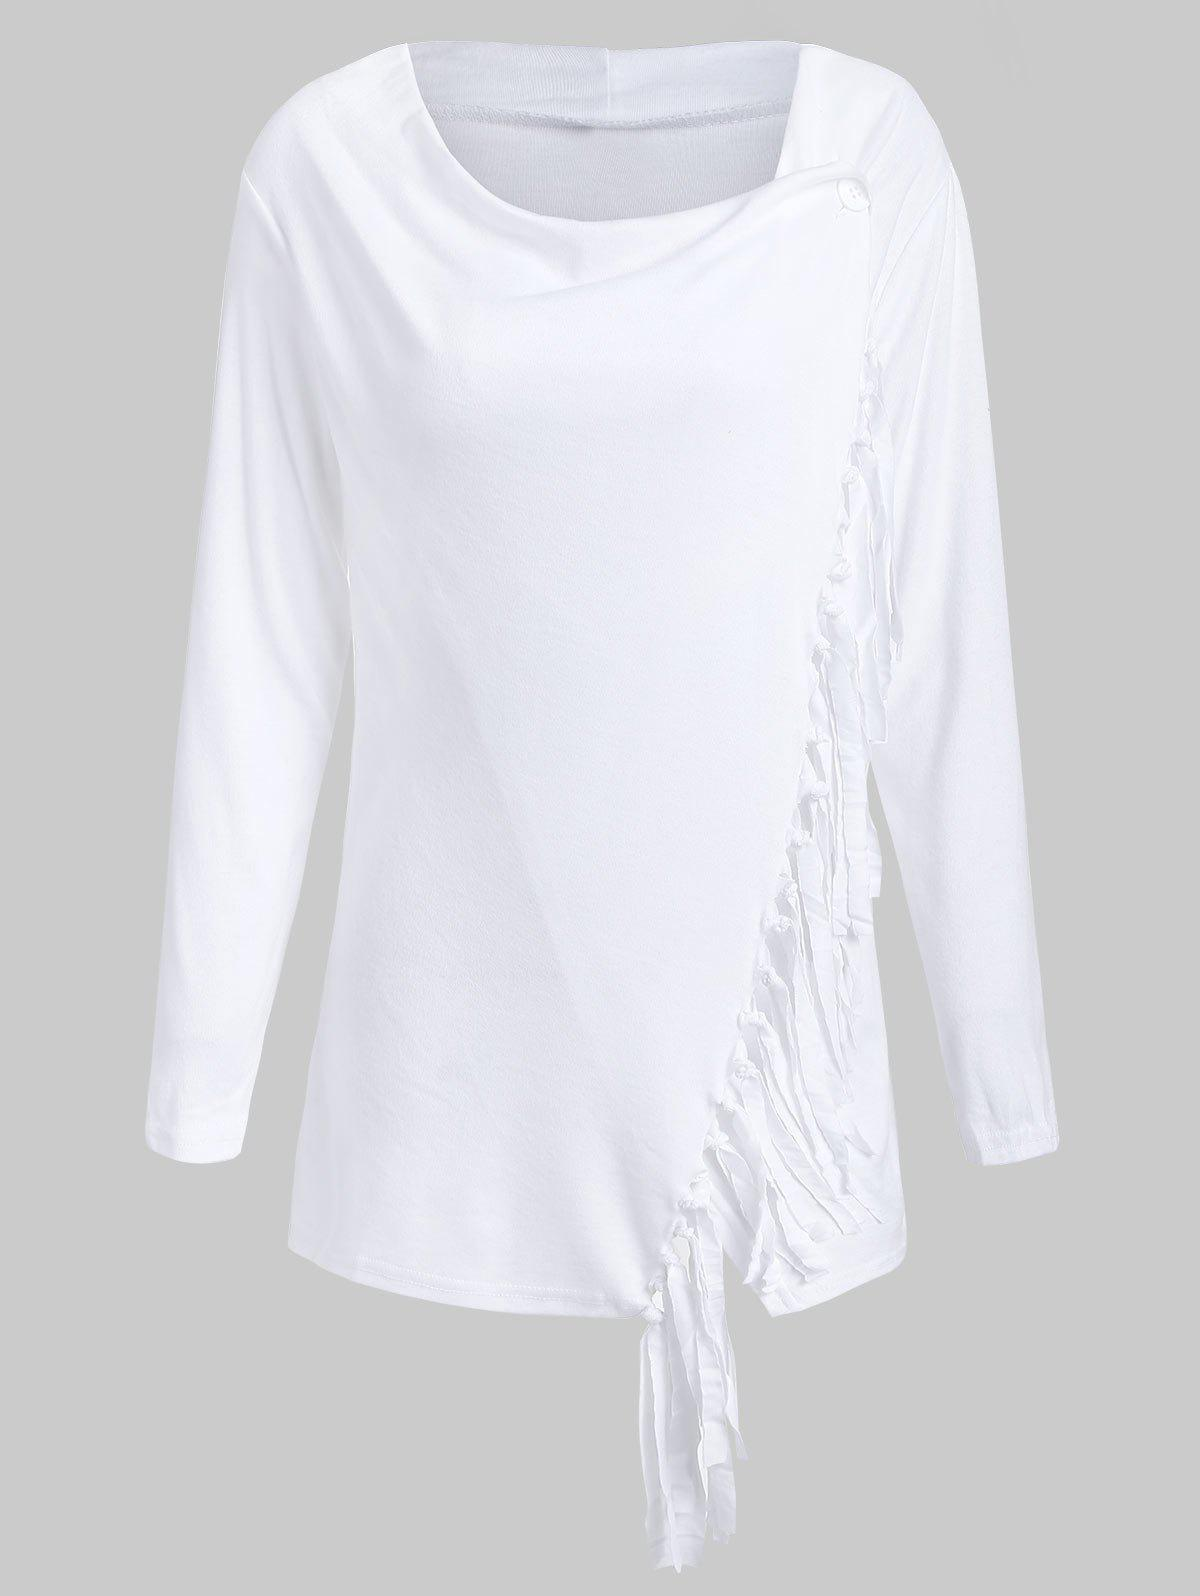 New Tassel Asymmetric Long Sleeve Top